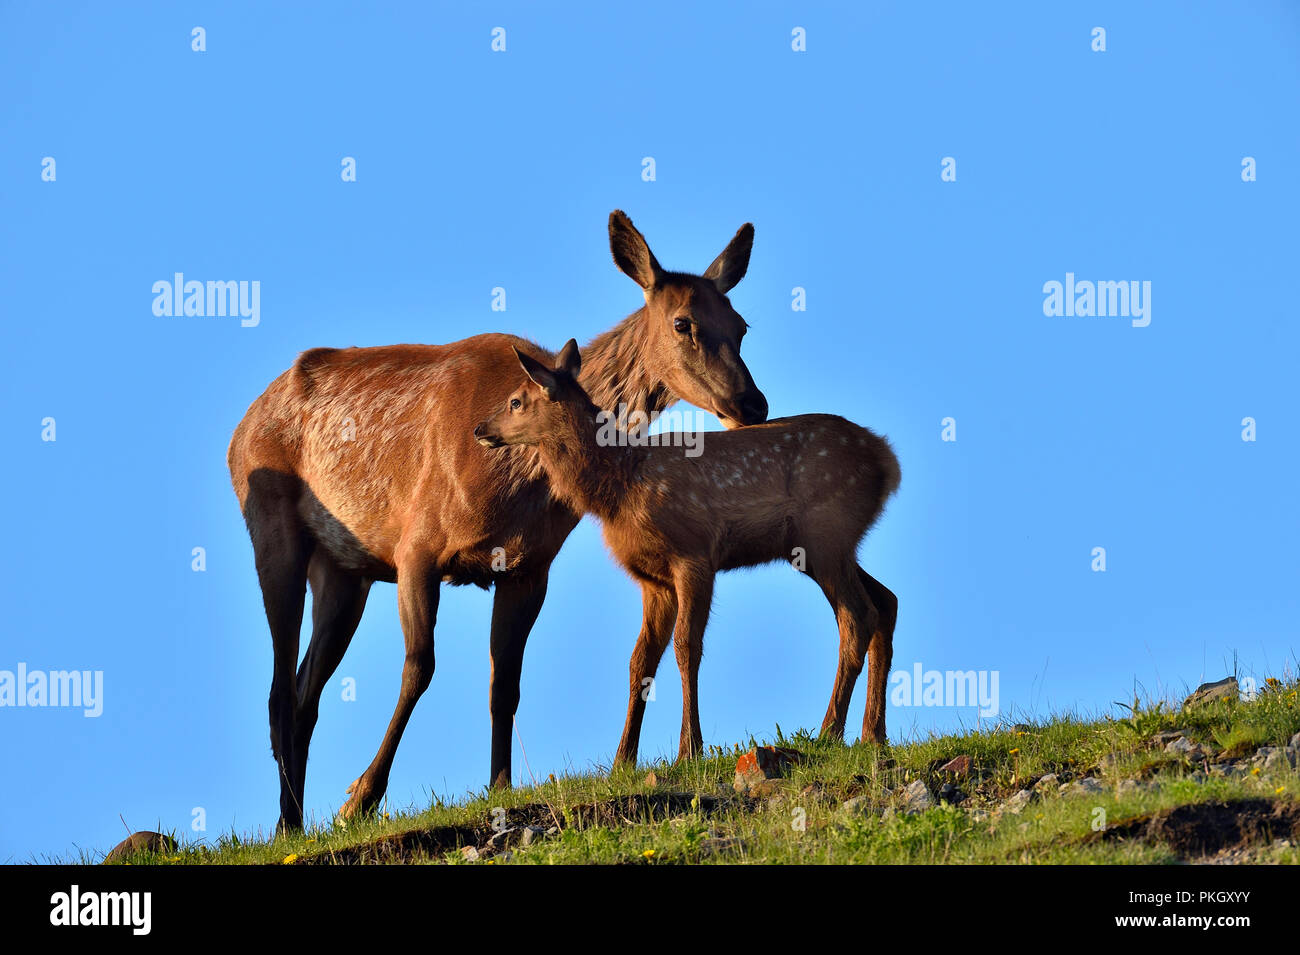 A mother elk  ( Cervus canadensis), being affectionate to her young calf on a mountain ridge  in rural Alberta Canada - Stock Image